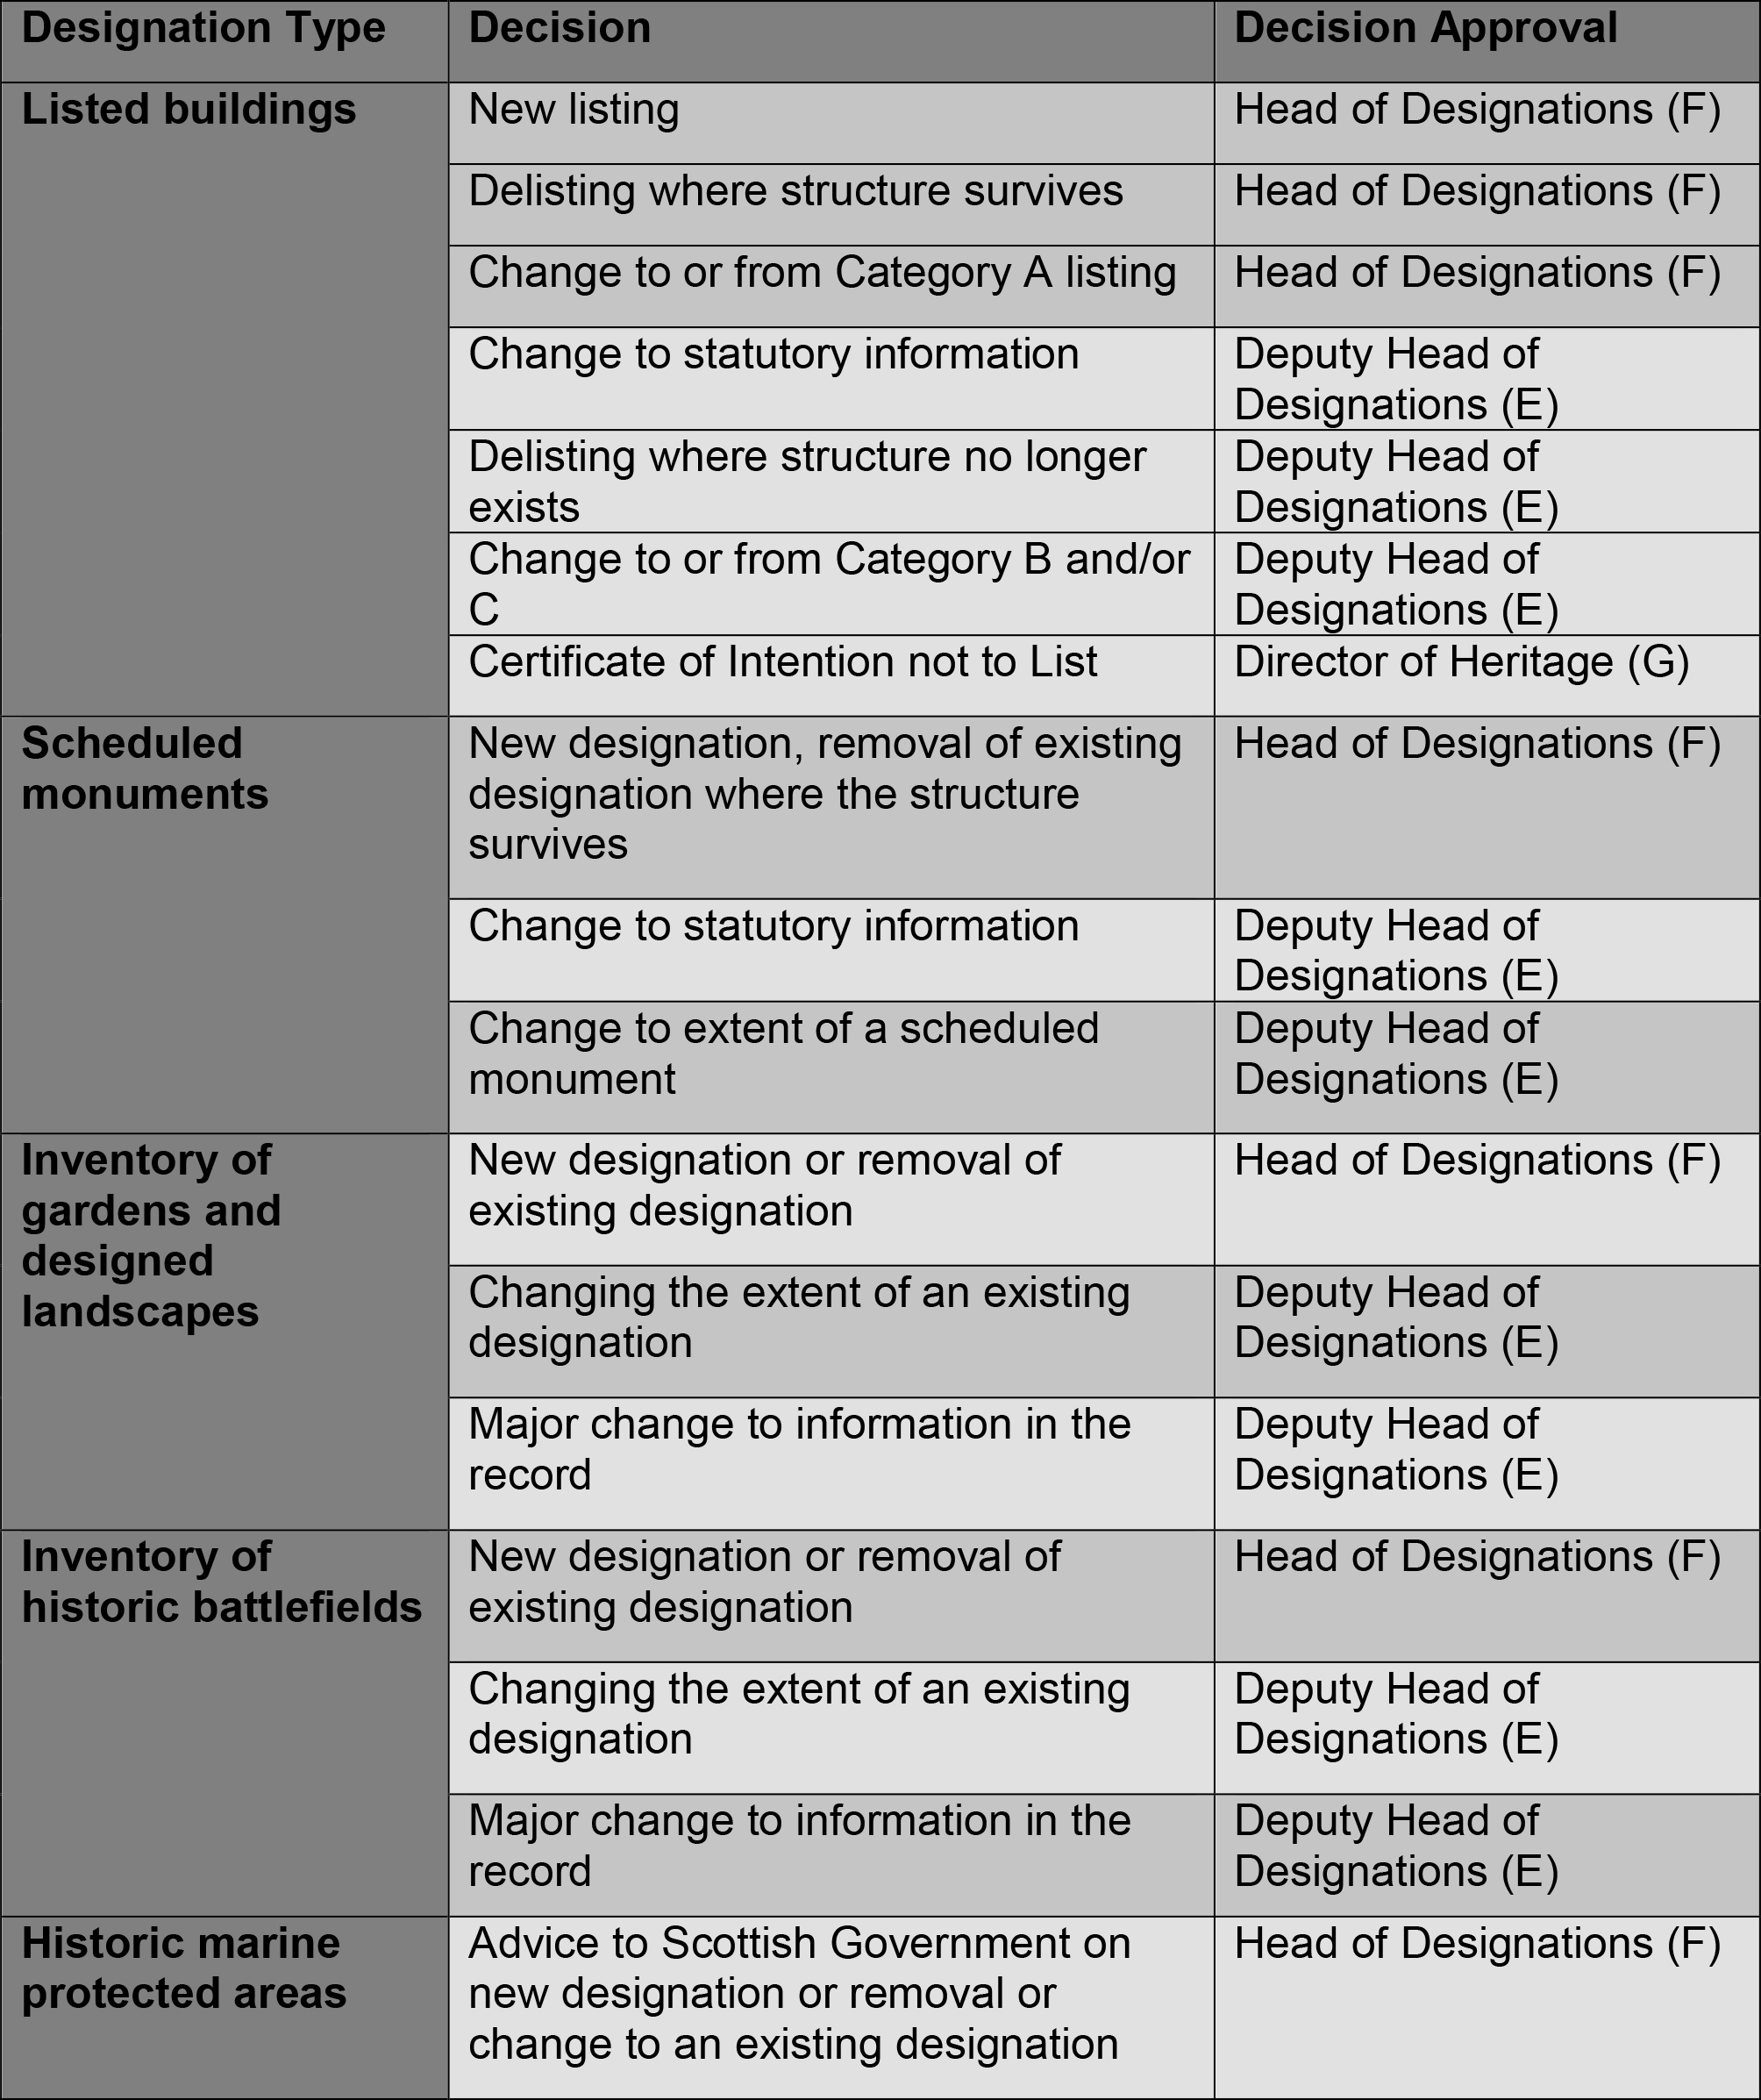 Table of Designation Types